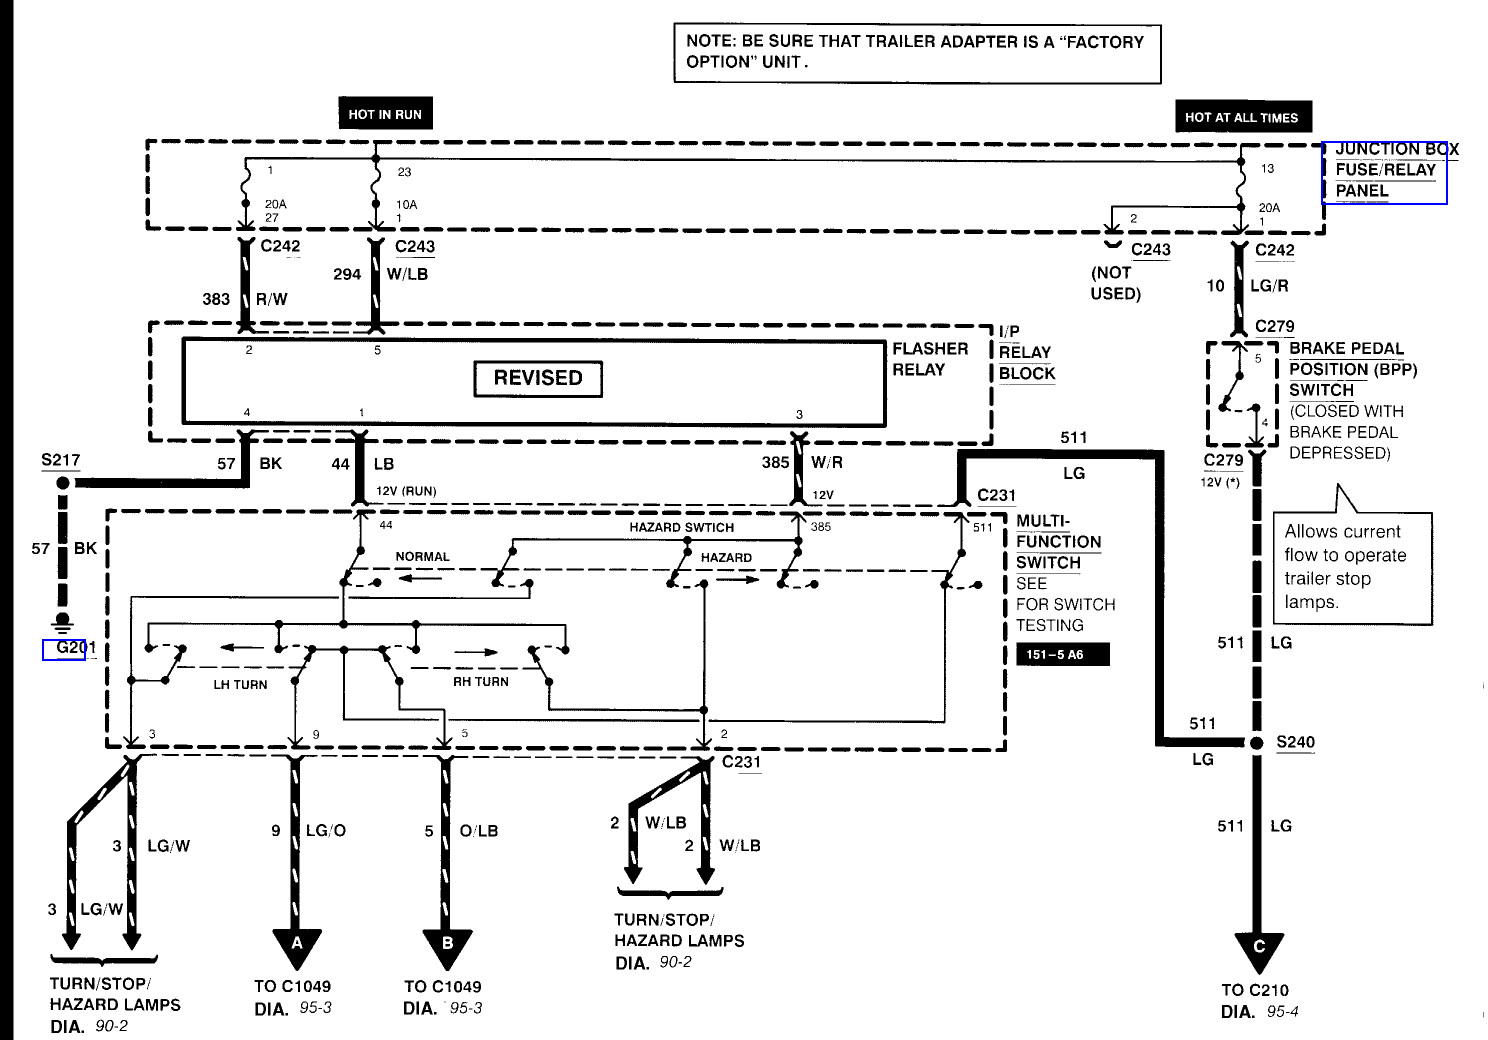 1995 Ford F250 Trailer Wiring Diagram Collection